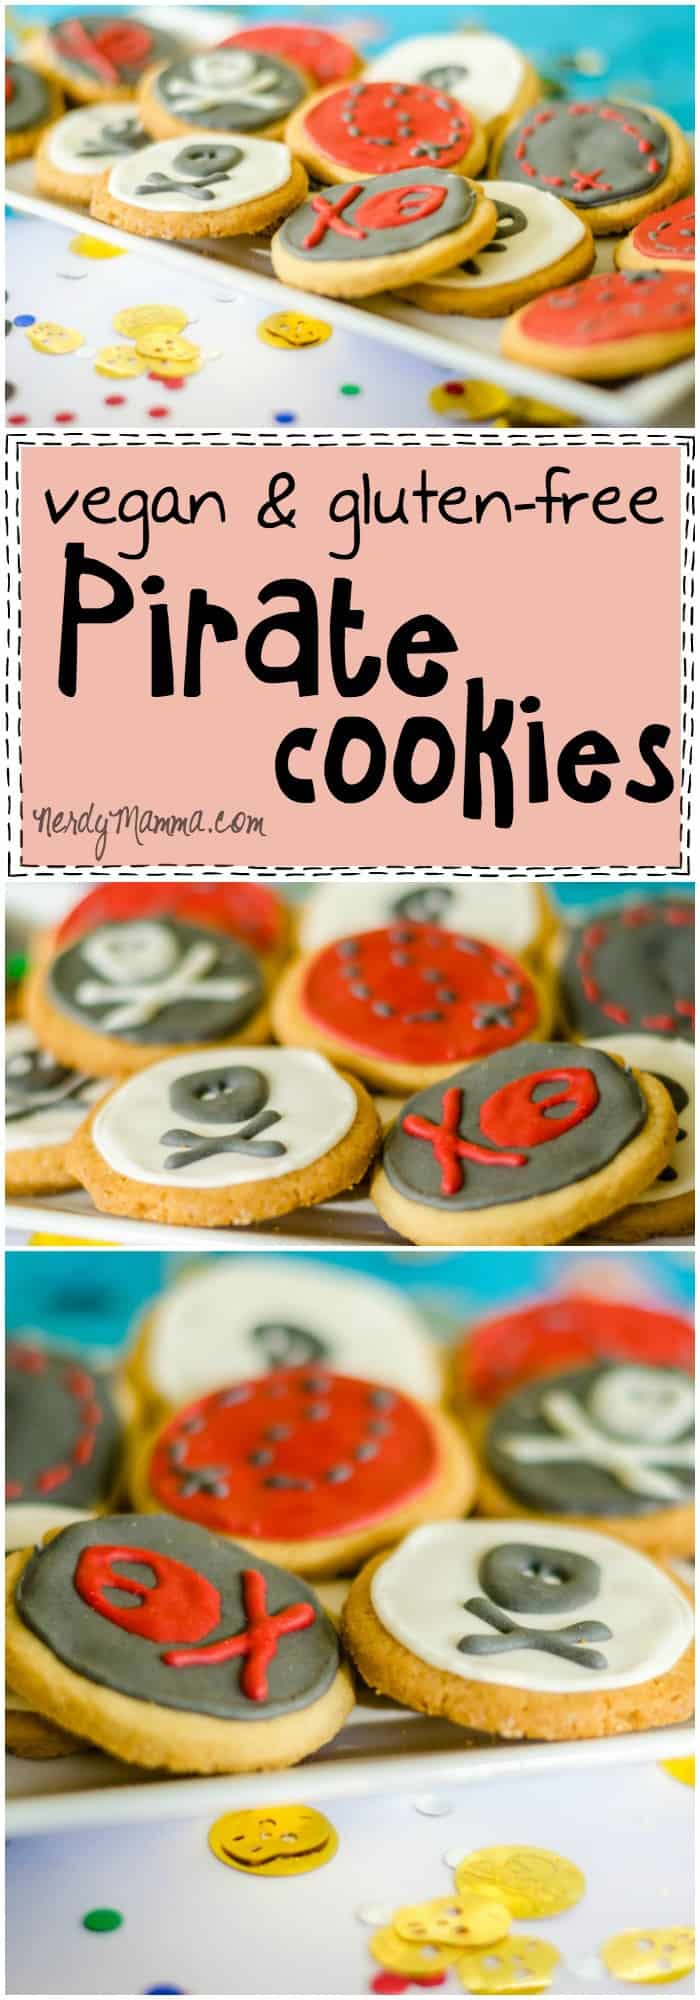 This recipe for vegan and gluten-free pirate cookies is so funny! I love it.